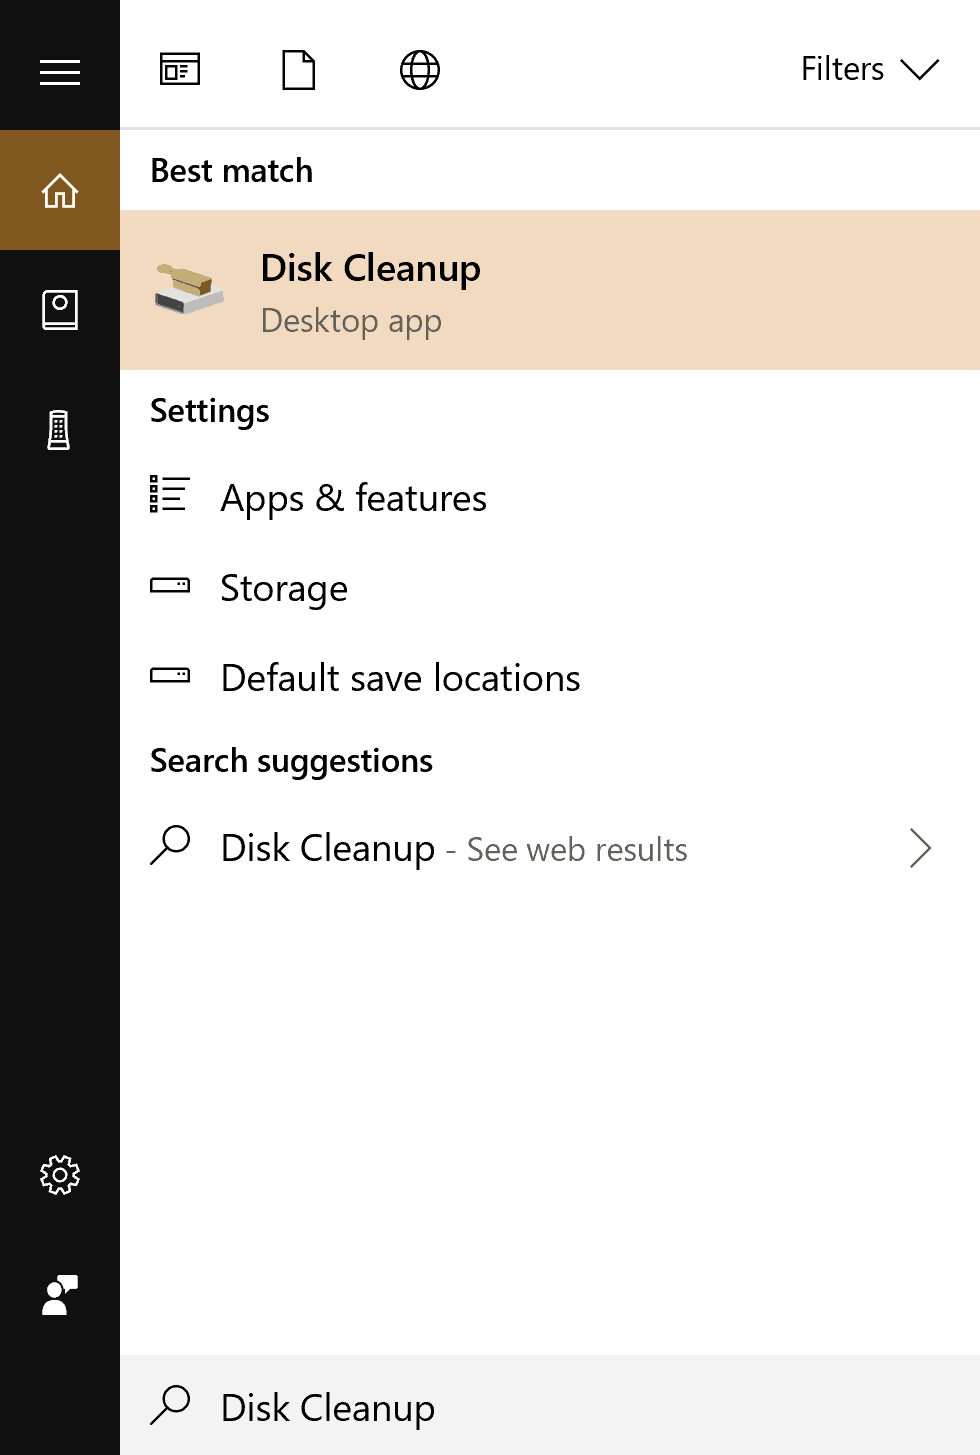 A disk cleanup can help free up space on your hard drive